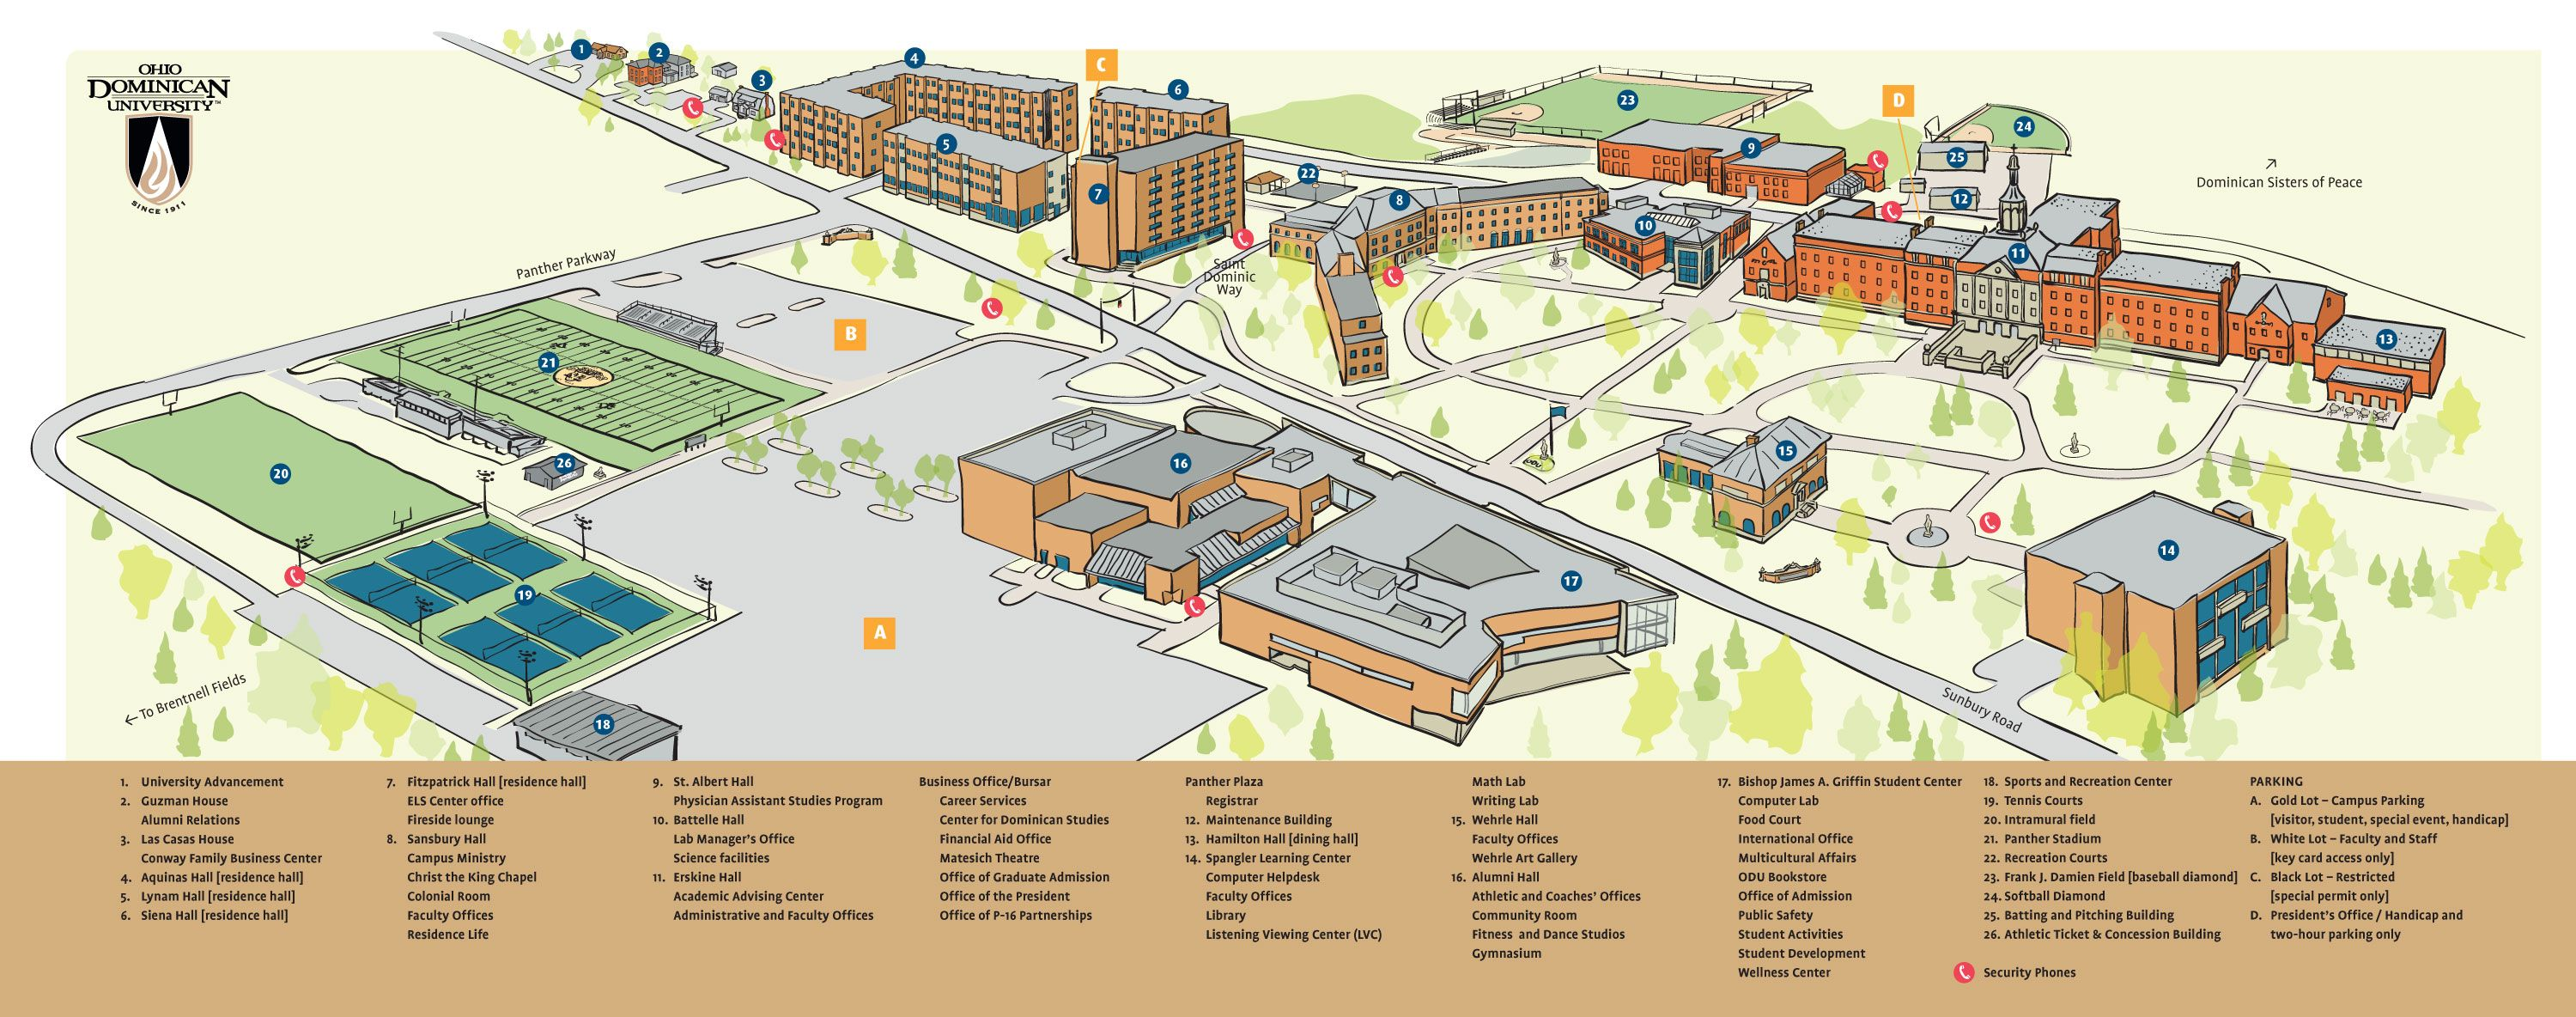 Pin by Ohio Dominican University on Around Campus | Campus ... Scf Denton Campus Map on